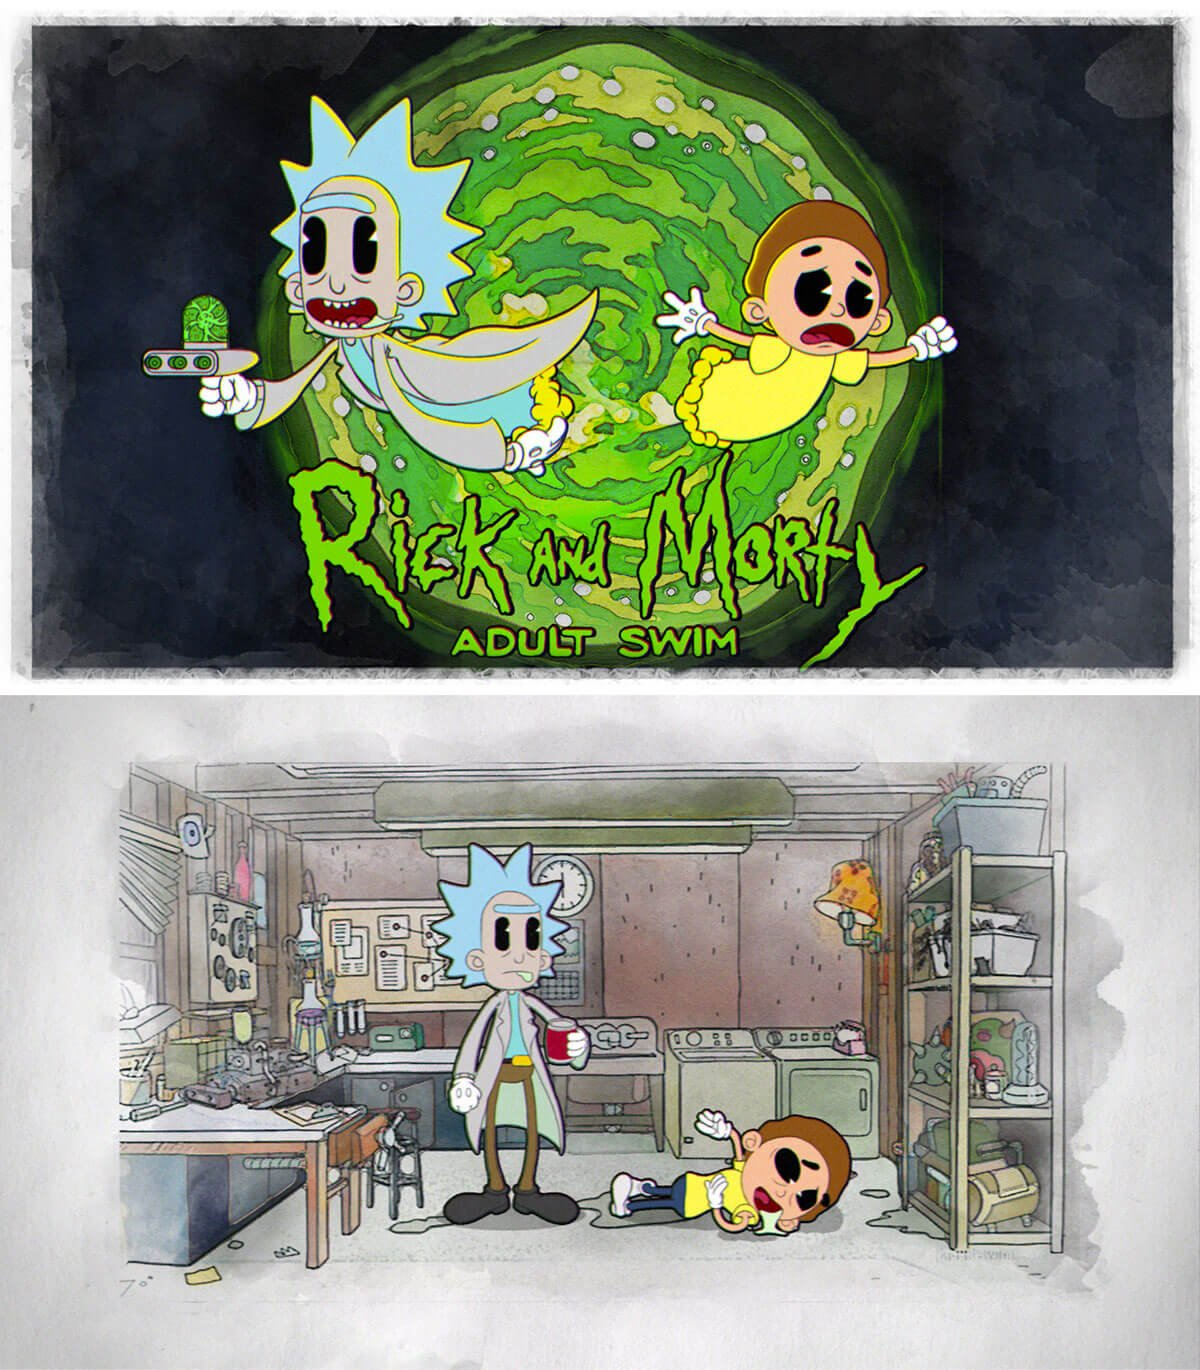 Rick and Morty Meets Cuphead by Marko Stanojevic